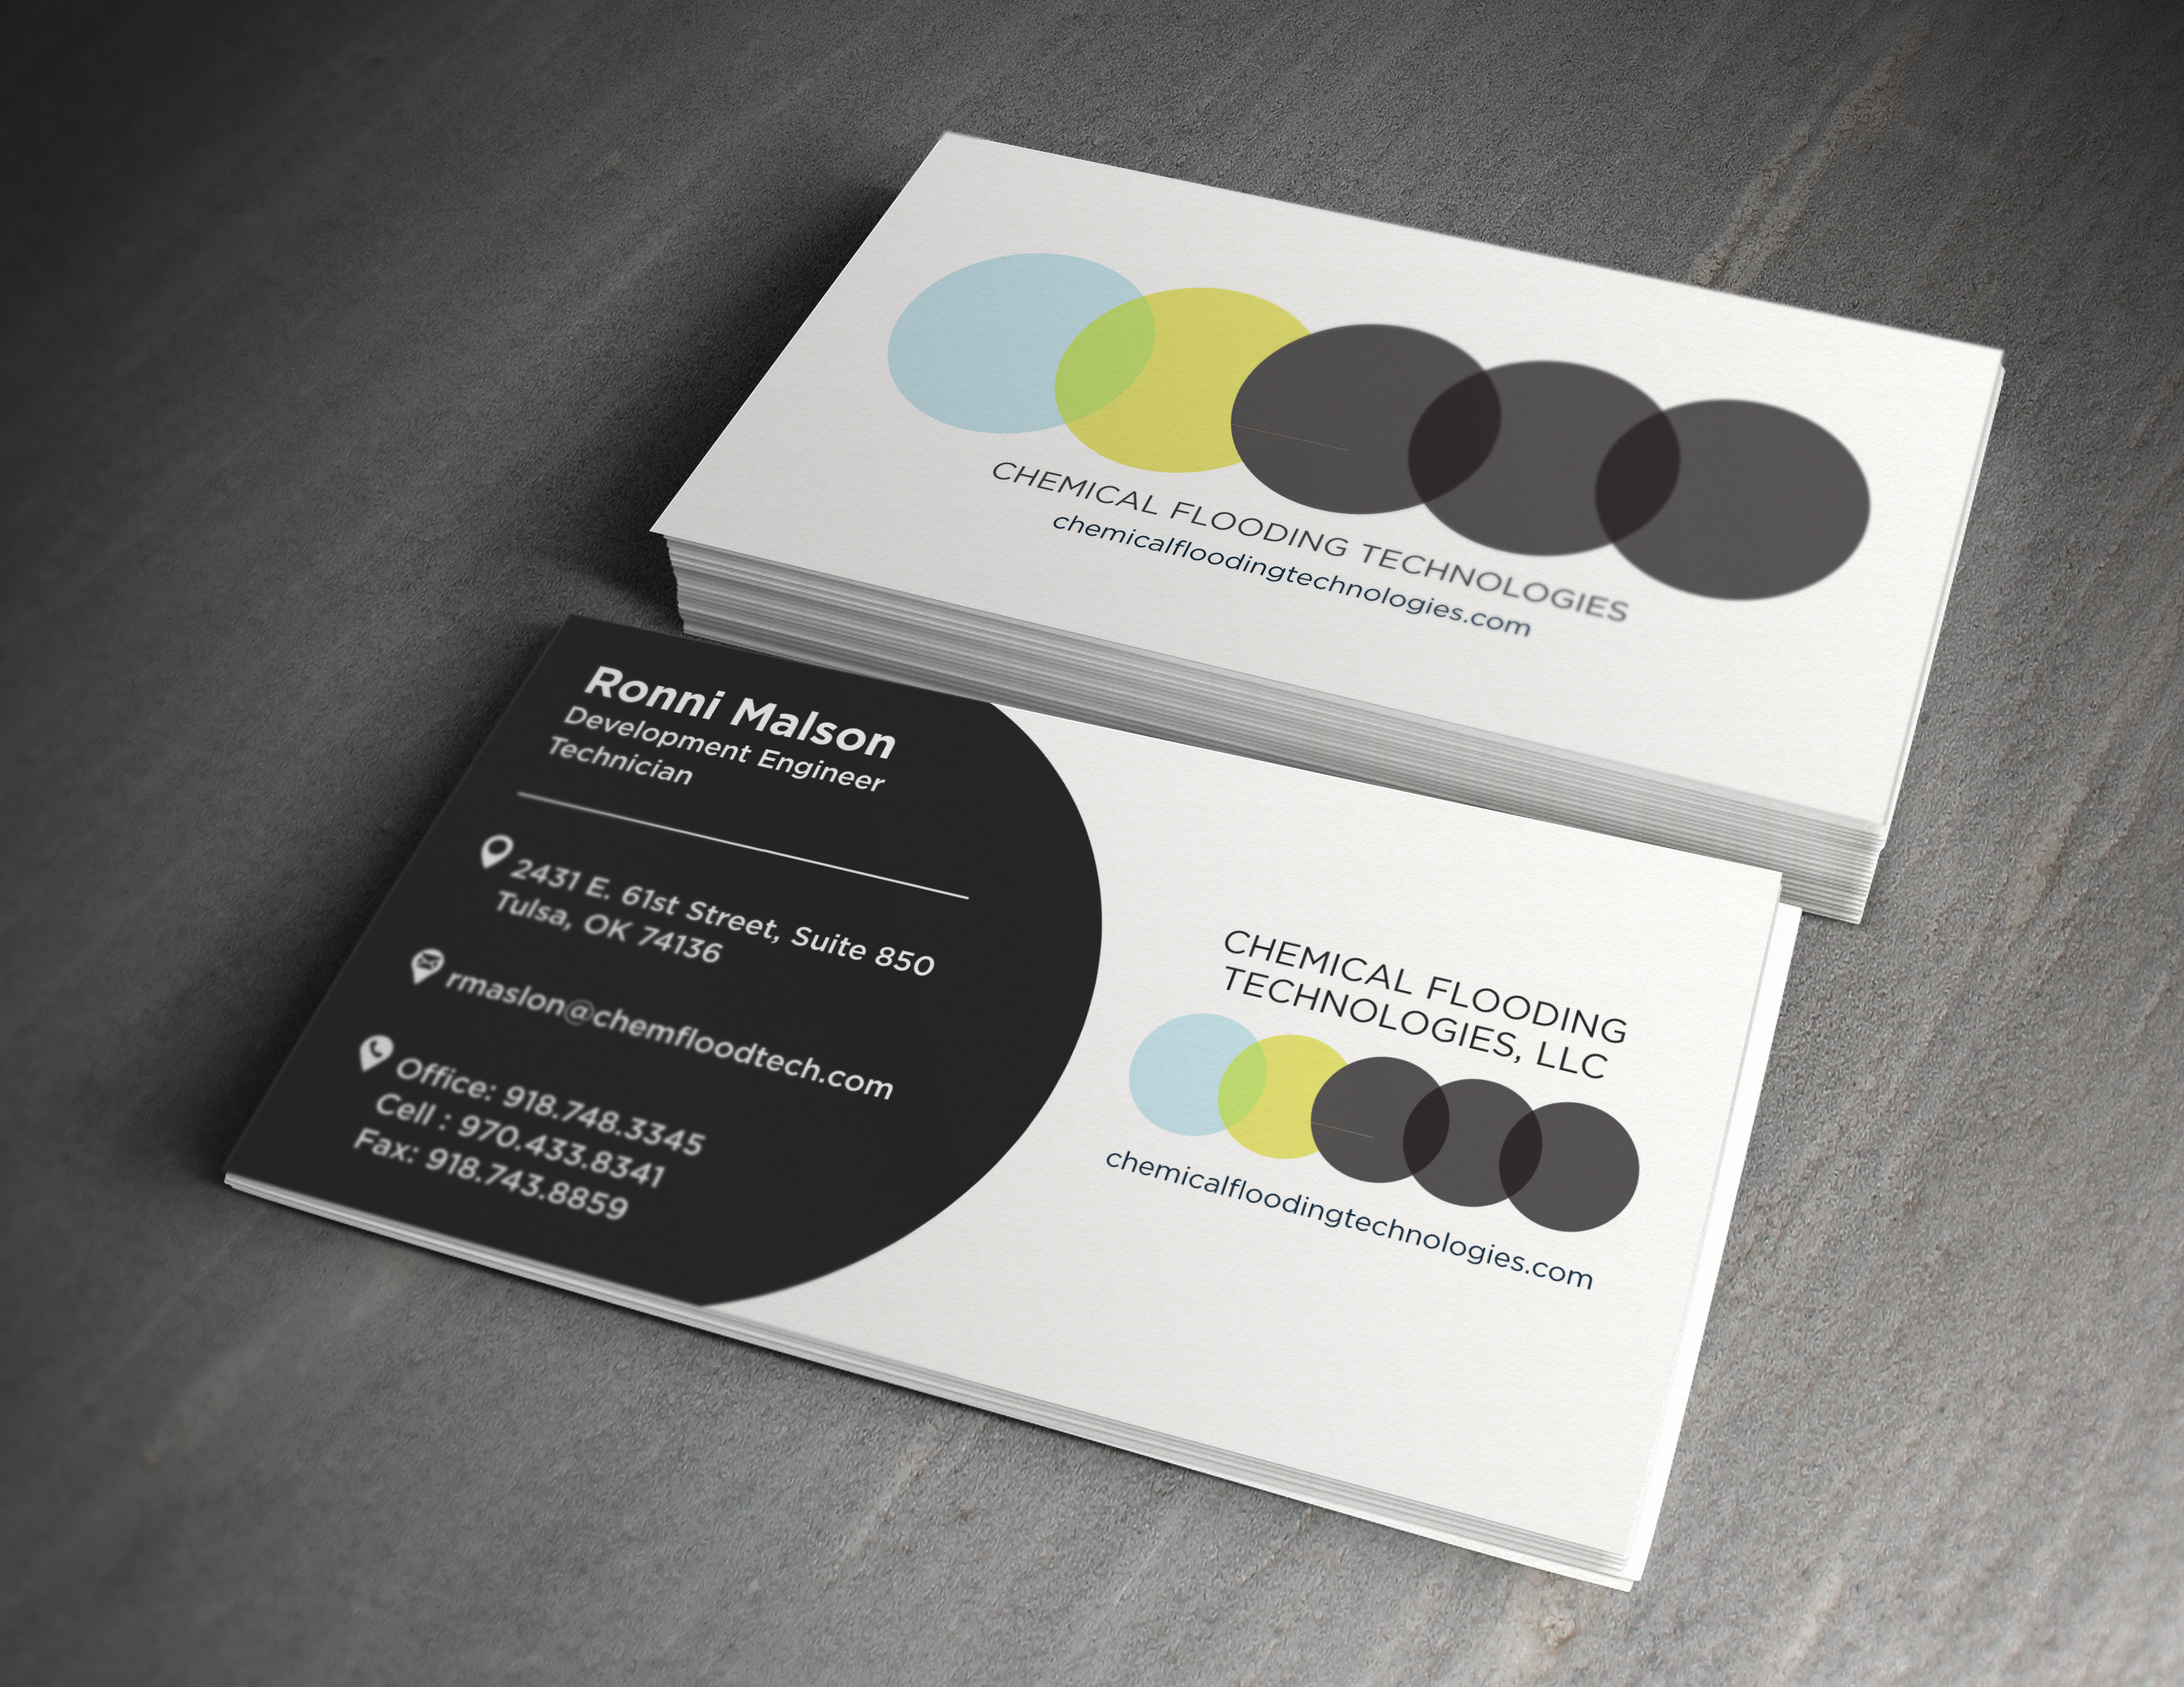 Corporate business cards companzees creative co tulsa ok website design web design graphic design graphics design tulsa business websites seo social media management social media marketing tulsa bixby reheart Images